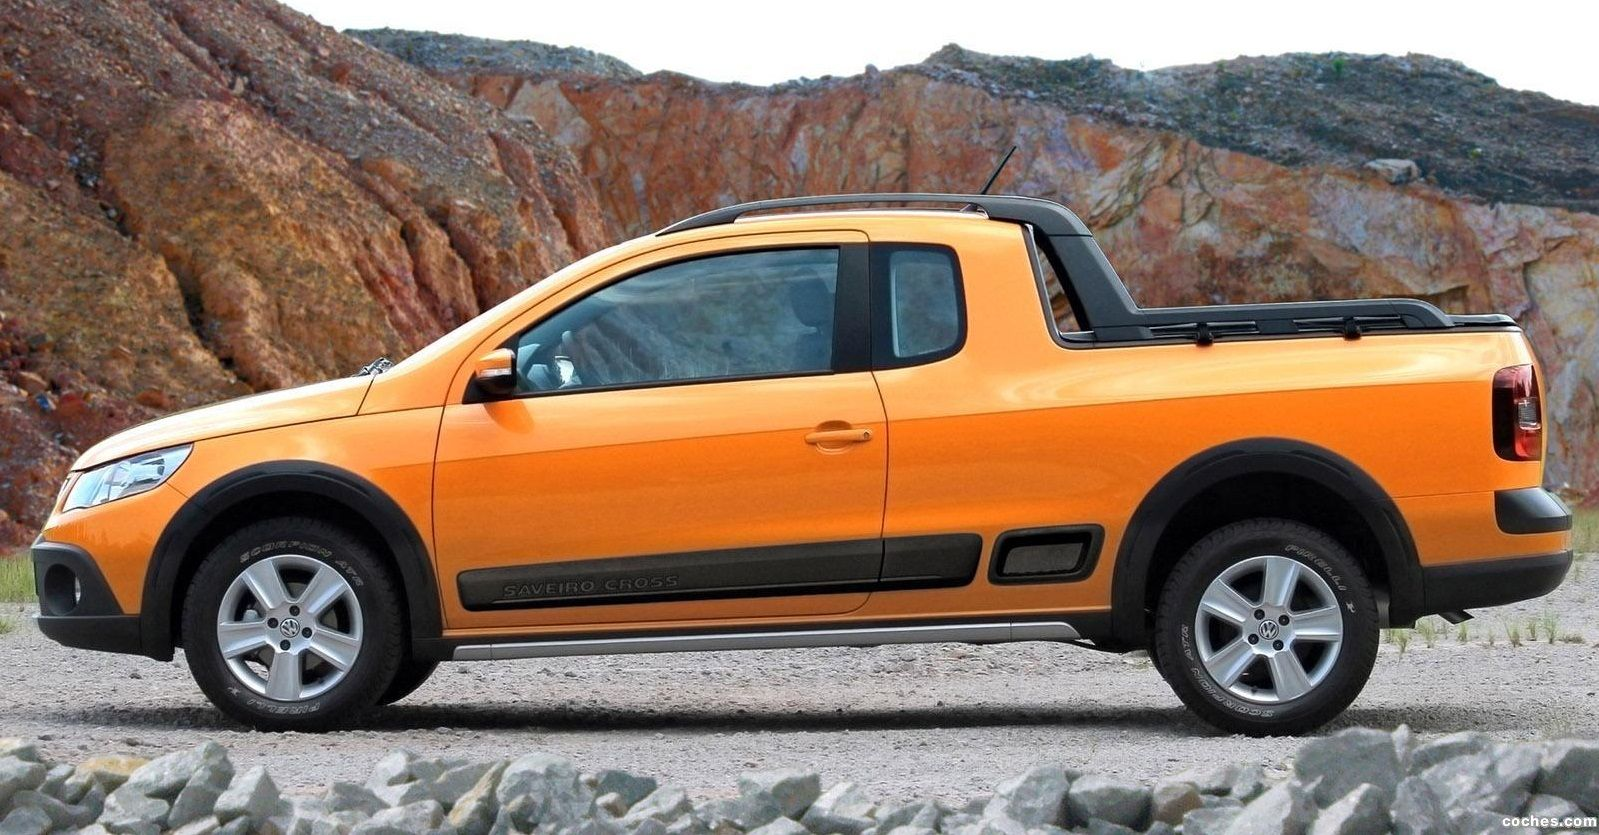 Grizzly Pick-up Truck - Google Search | Small Cars | Pinterest ...